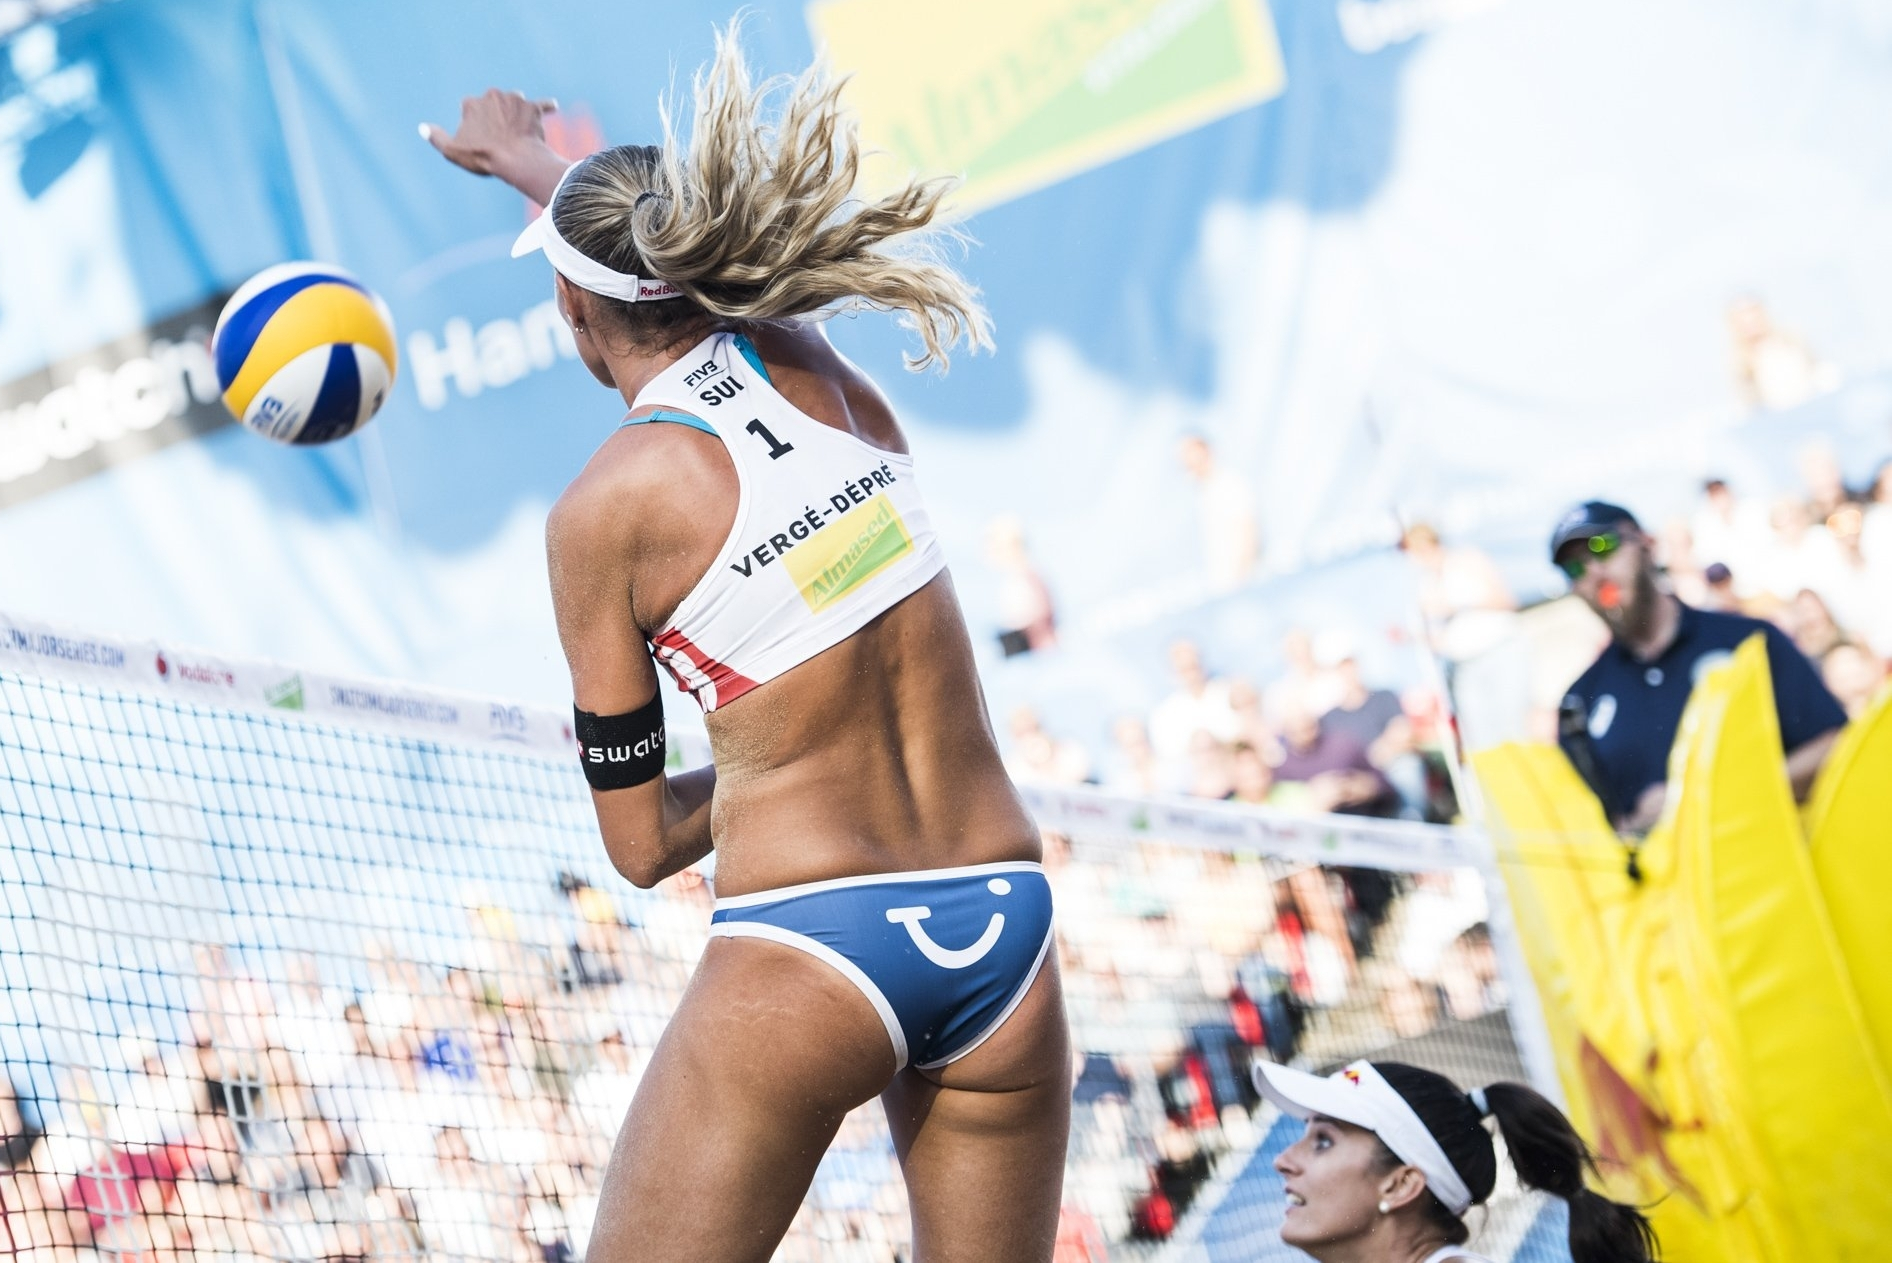 Anouk in hair-raising action on the Red Bull Beach Arena